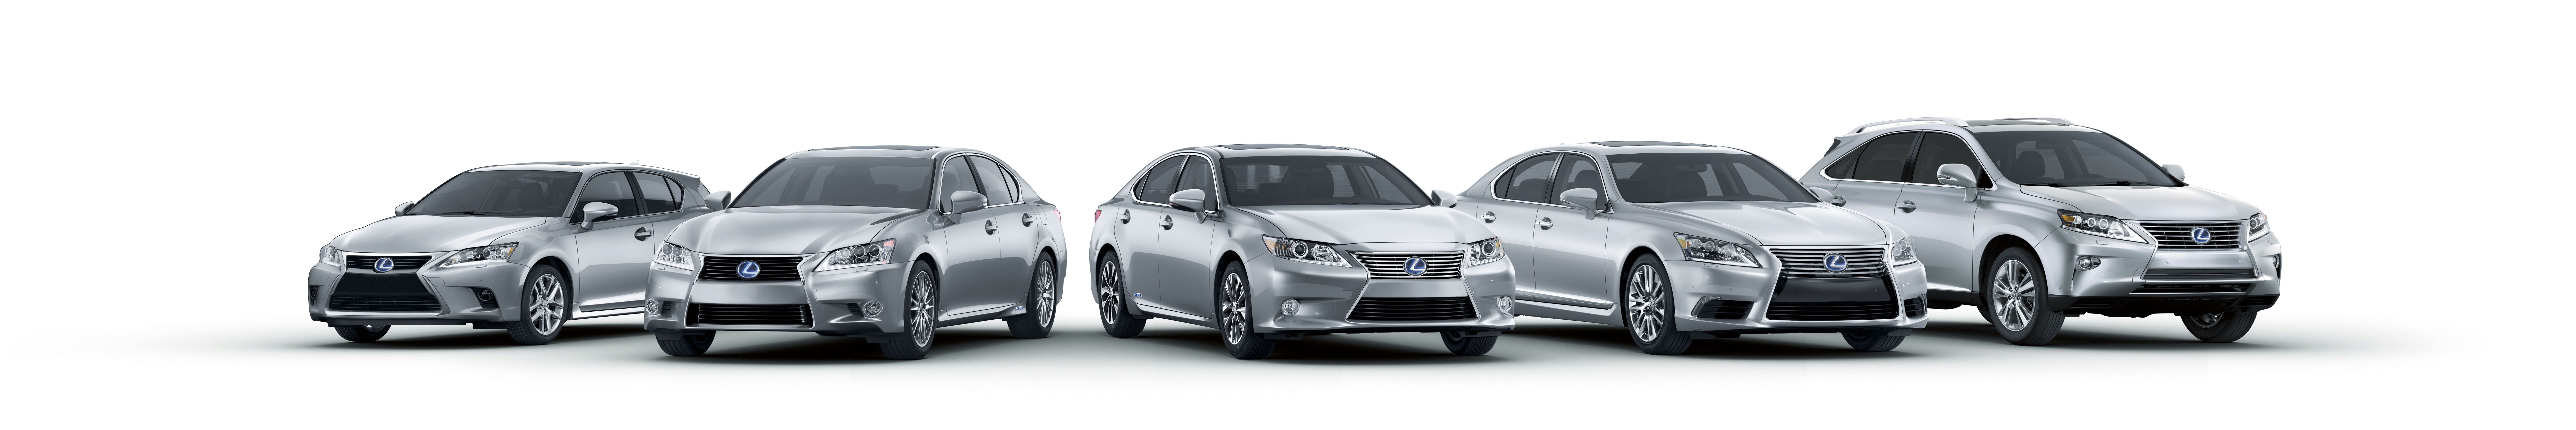 At Magnussen\'s Lexus of Fremont, WE PAY CASH FOR CARS! We need used ...